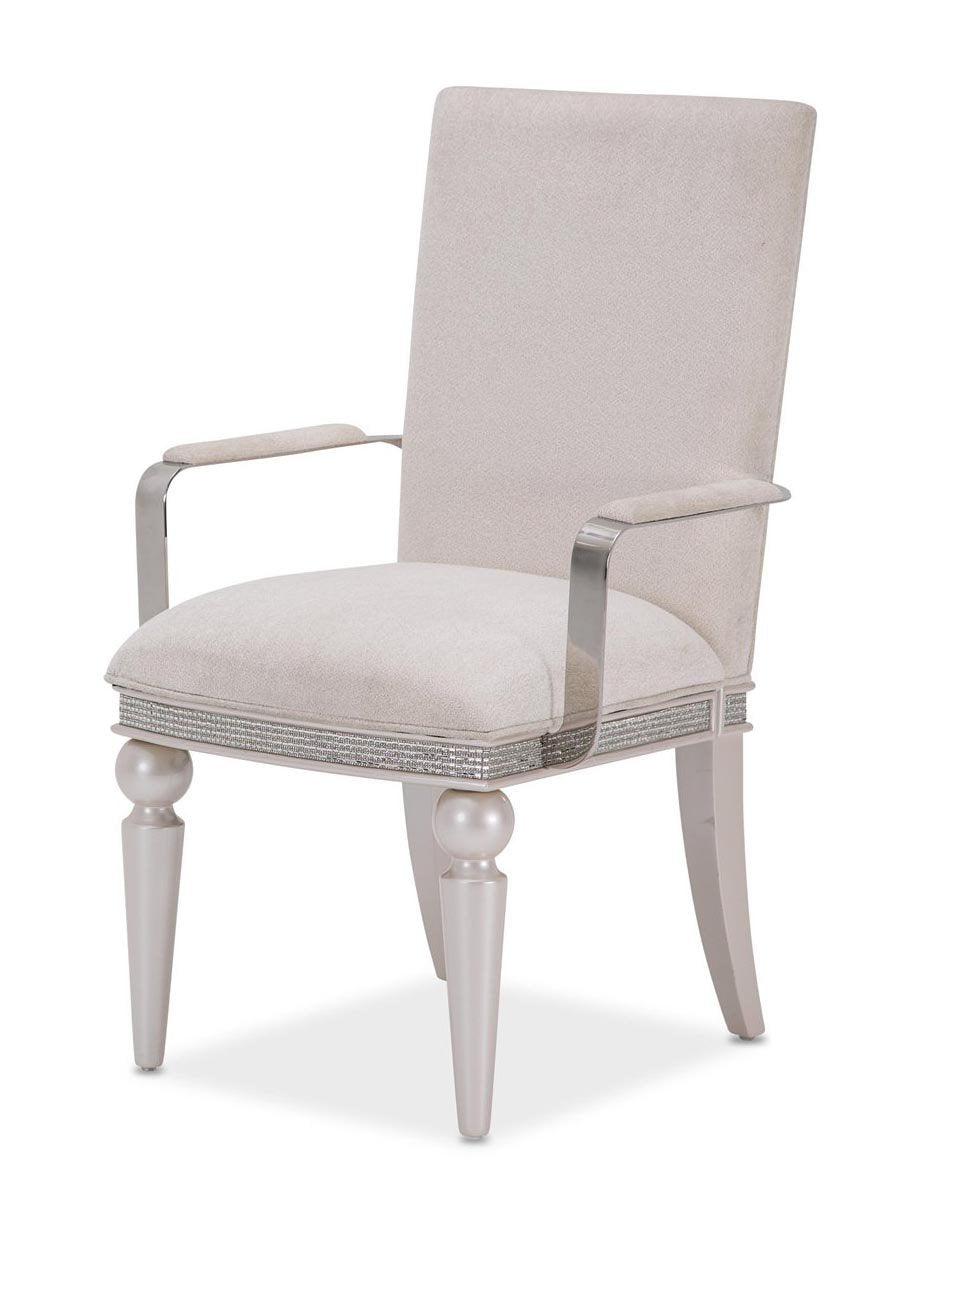 Amini Glimmering Heights Arm Chair in Ivory